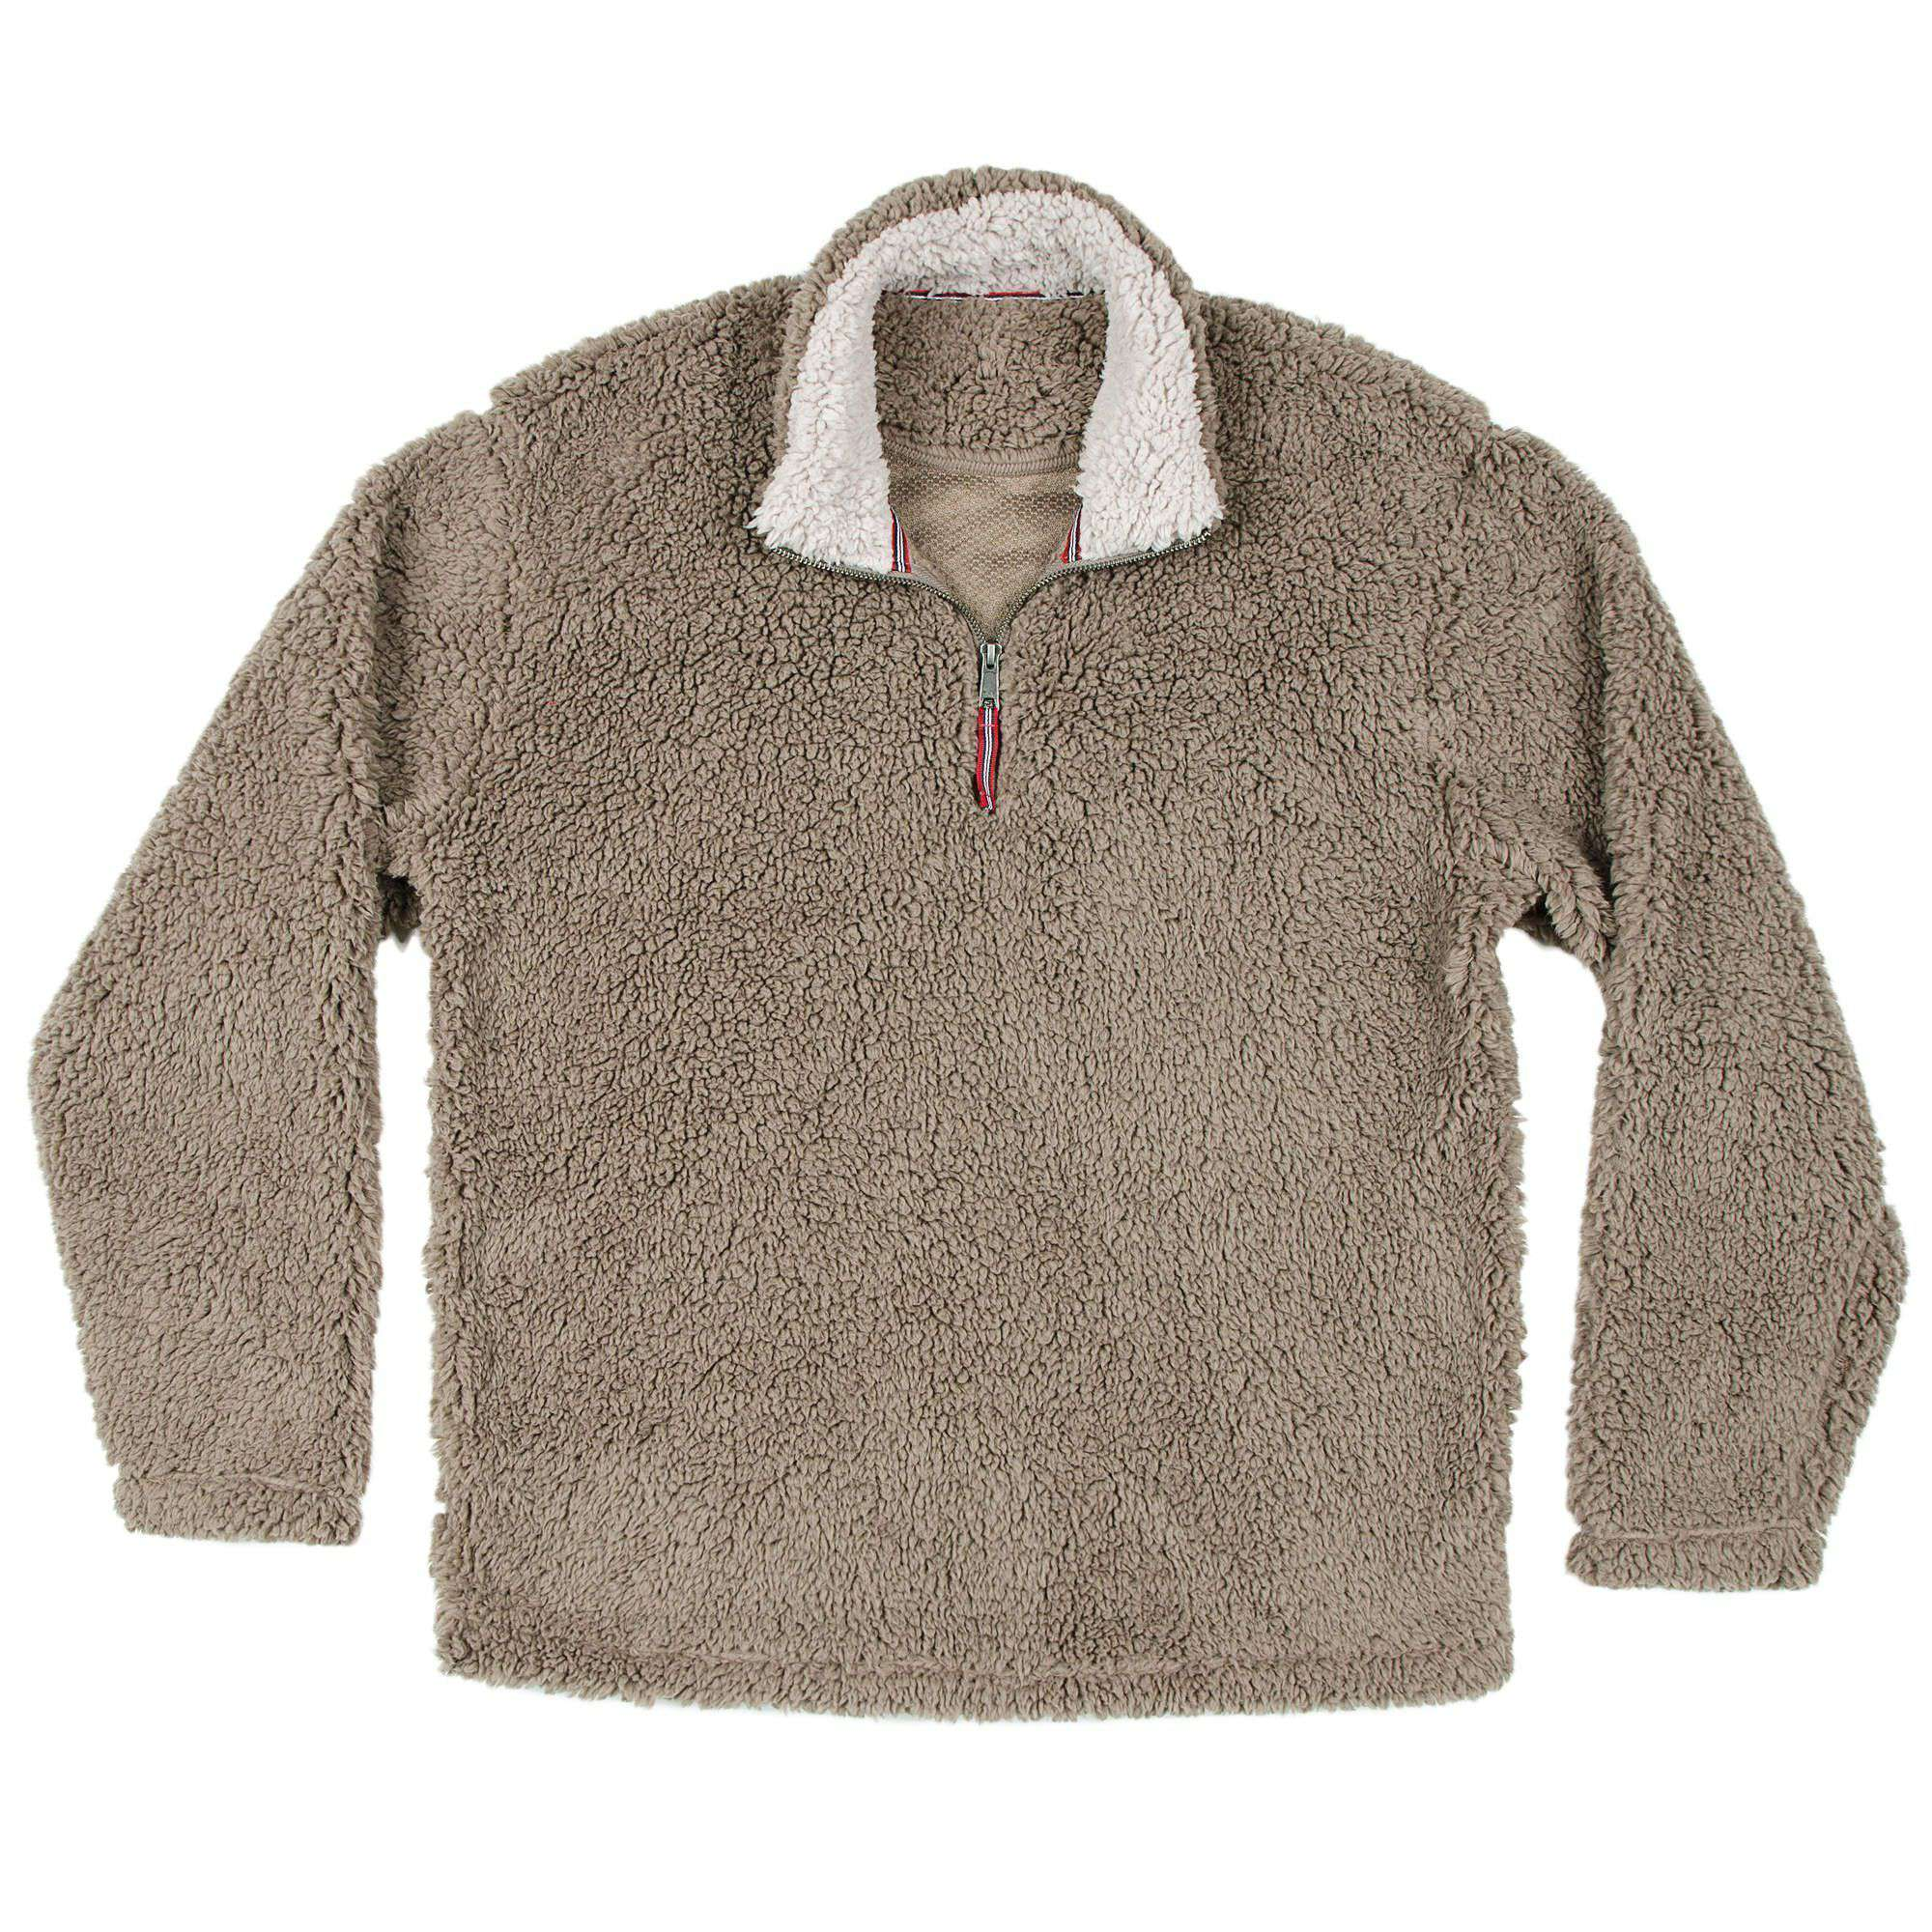 Southern marsh appalachian pile pullover 1 4 zip in light for Southern marsh dress shirts on sale